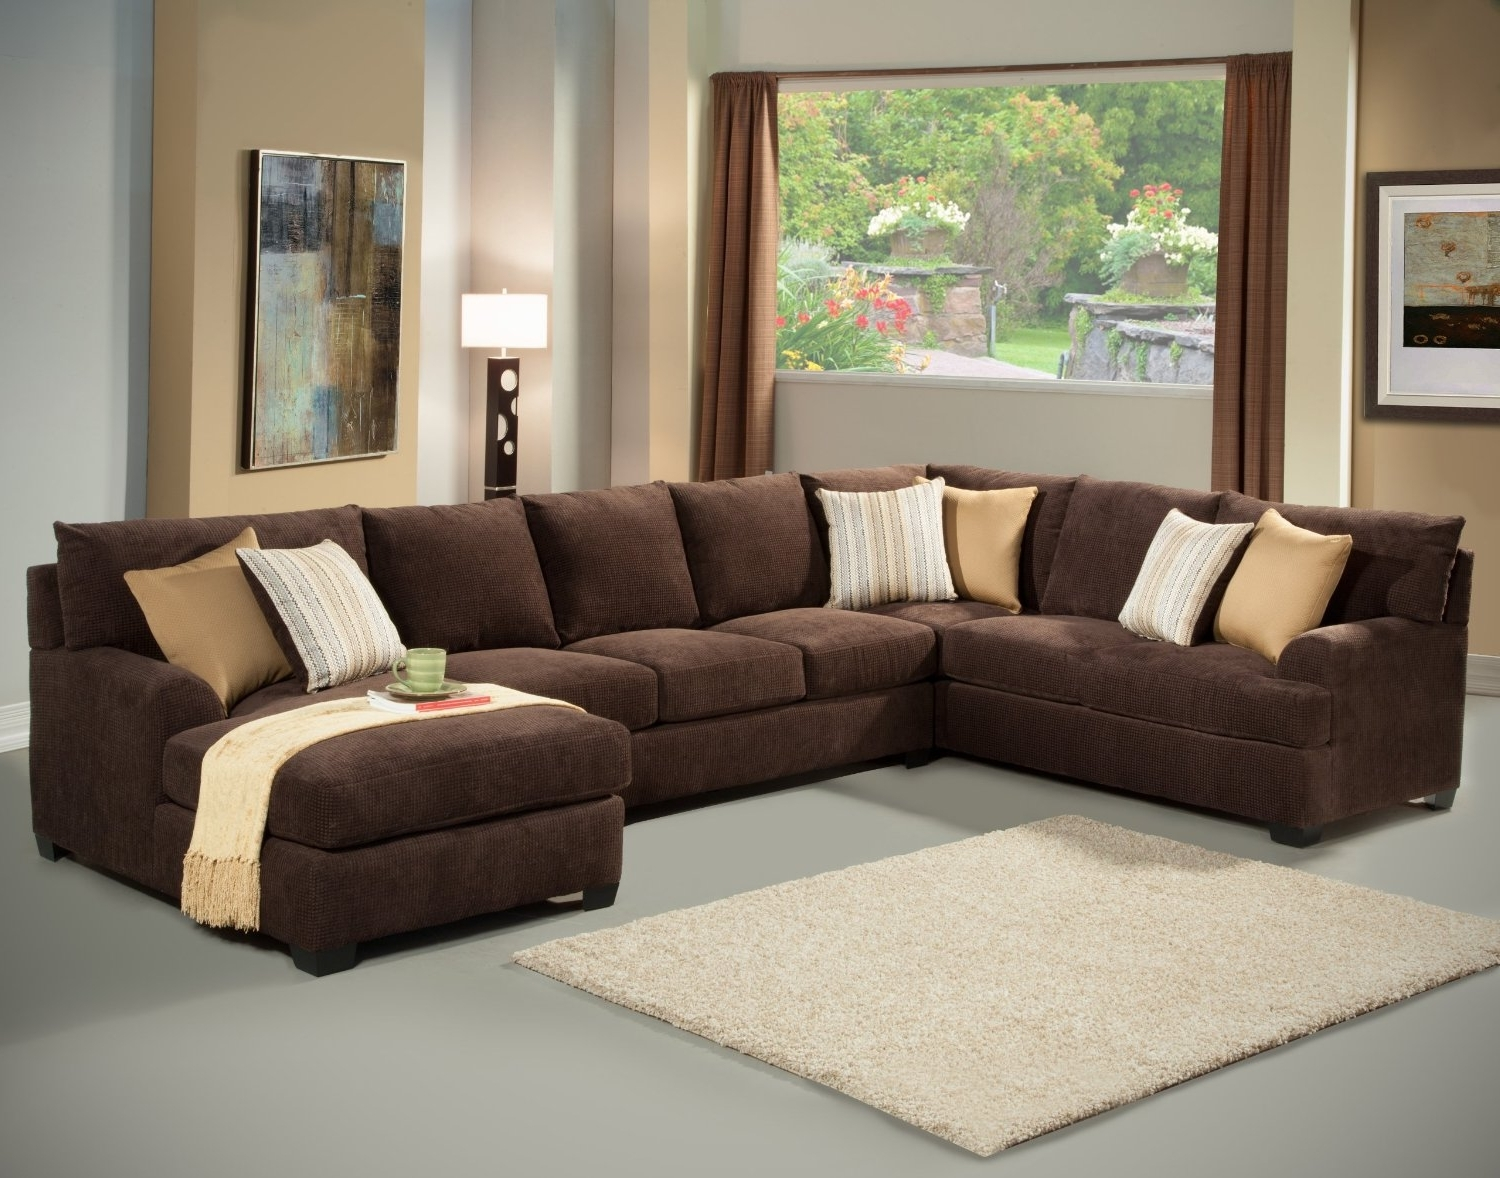 Favorite Large Sectionals With Chaise With Living Room: Large Sectional Sofas In Brown With Photo In Wall (View 8 of 15)